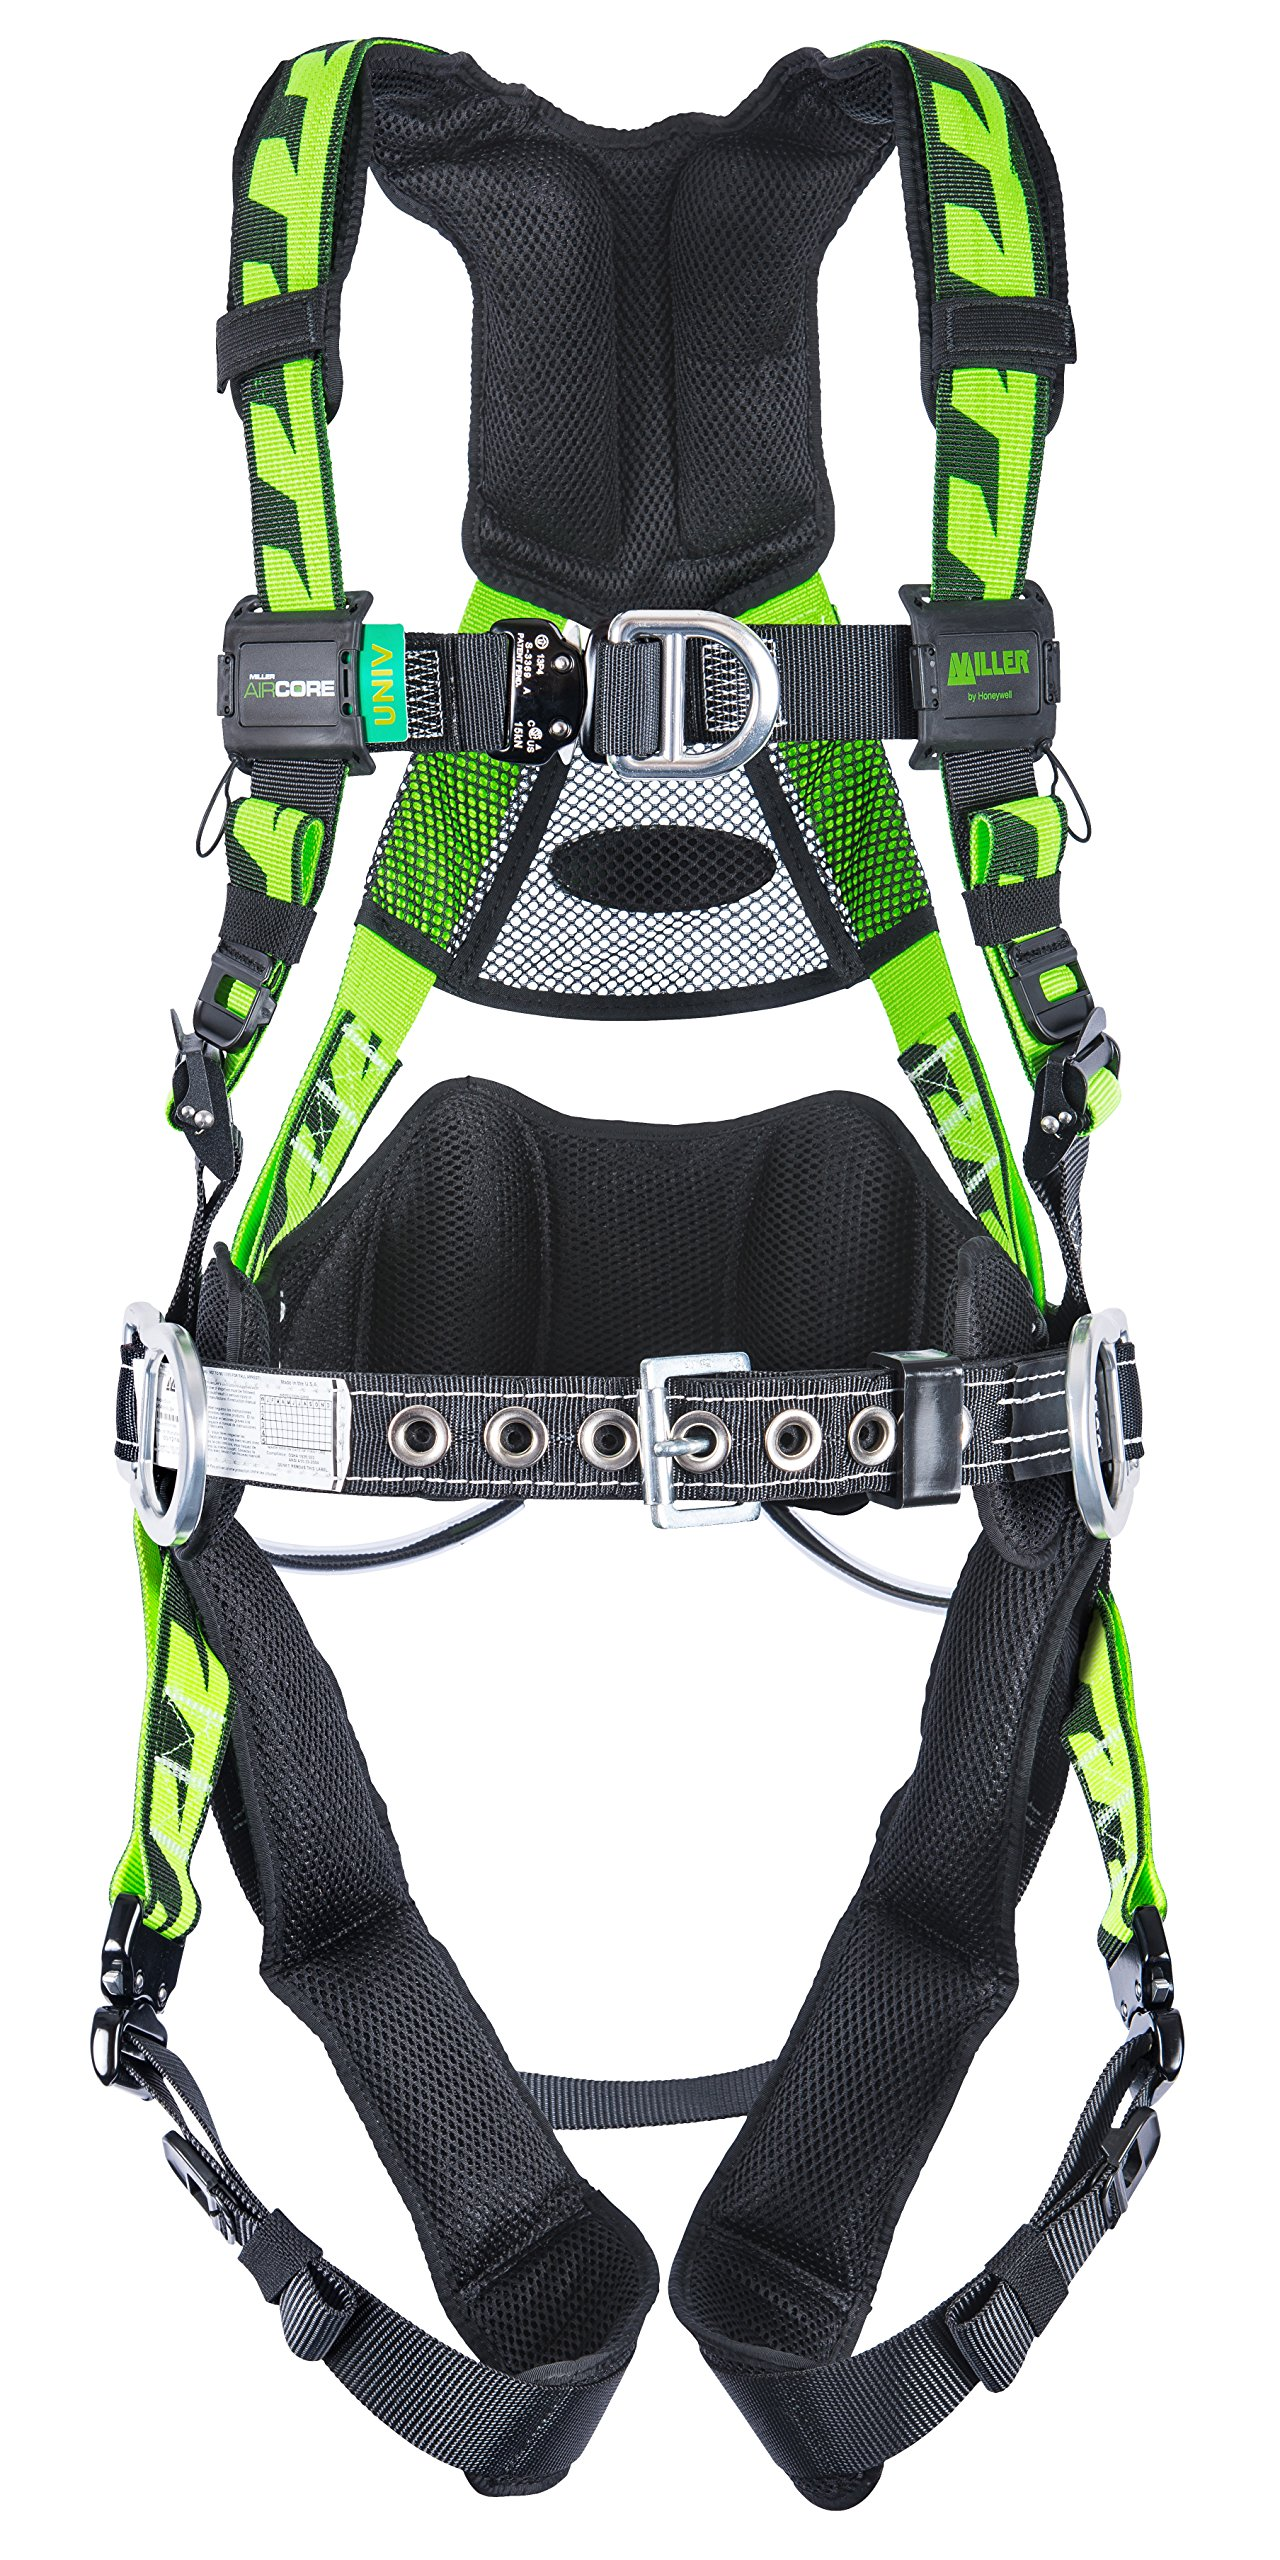 Miller by Honeywell AAT-QCSMG Aircore Tower Climbing Harness with Aluminum Hardware by Honeywell